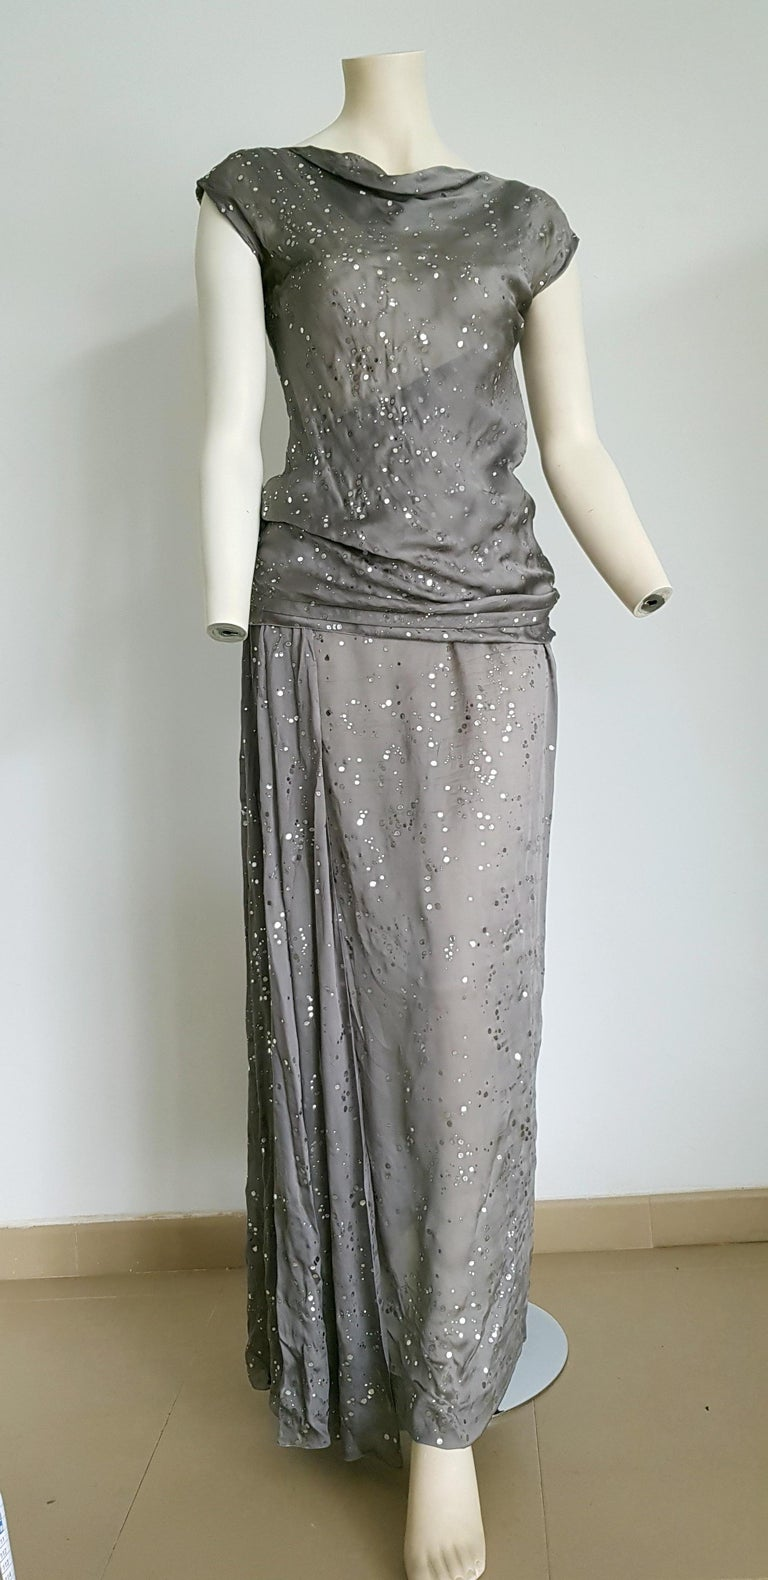 CHANEL Haute Couture, fabric with bright silver application, top with a single shoulder strap, and blouse and skirt. All silk. Gown evening dress - Unworn, New.  SIZE: equivalent to about Small / Medium, please review approx measurements as follows